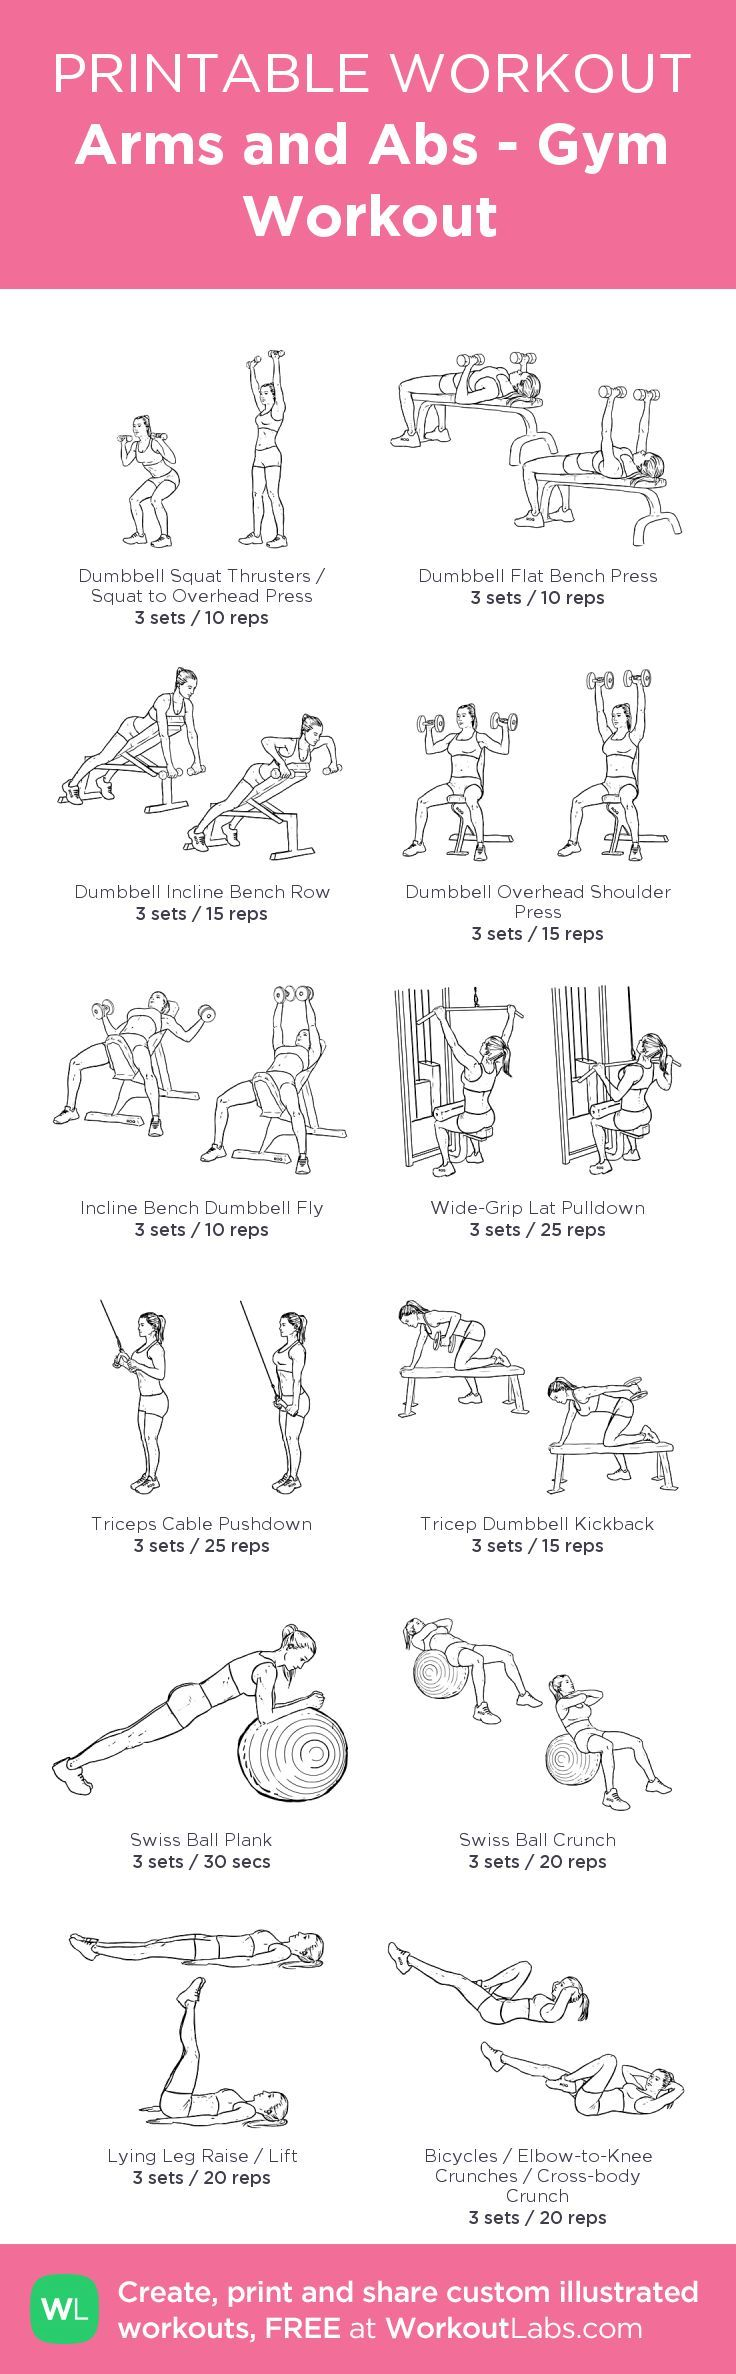 Arms and Abs - Gym Workout –my custom workout created at WorkoutLabs.com • Click through to download as printable PDF! #customworkout